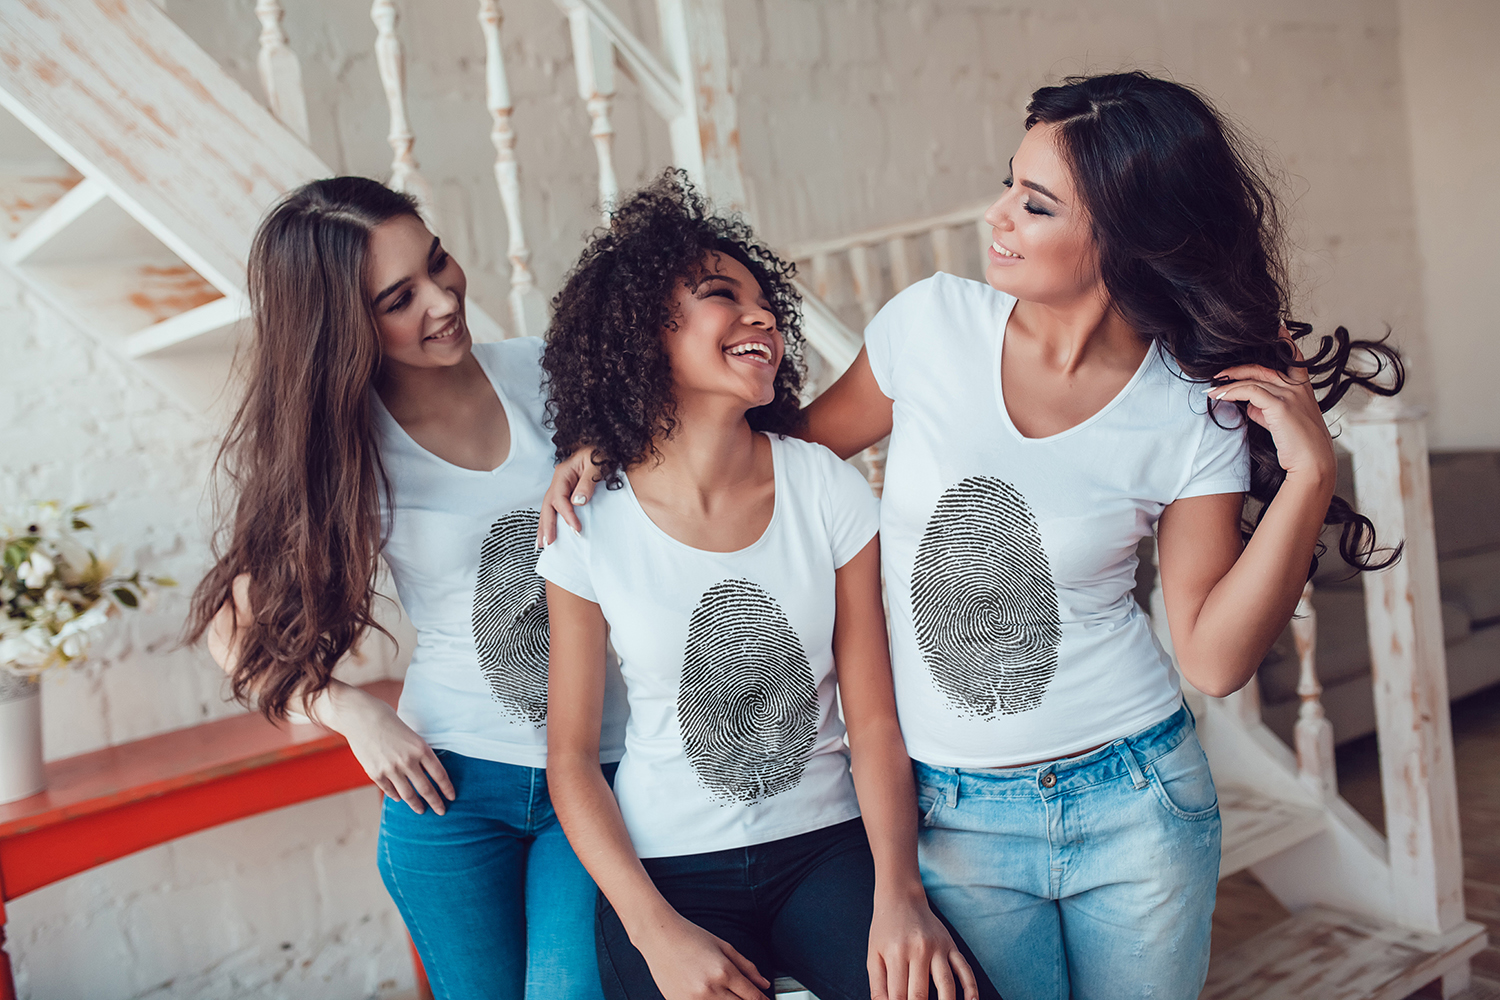 Women's T-Shirts Mock-Up Vol.1 2017 example image 8